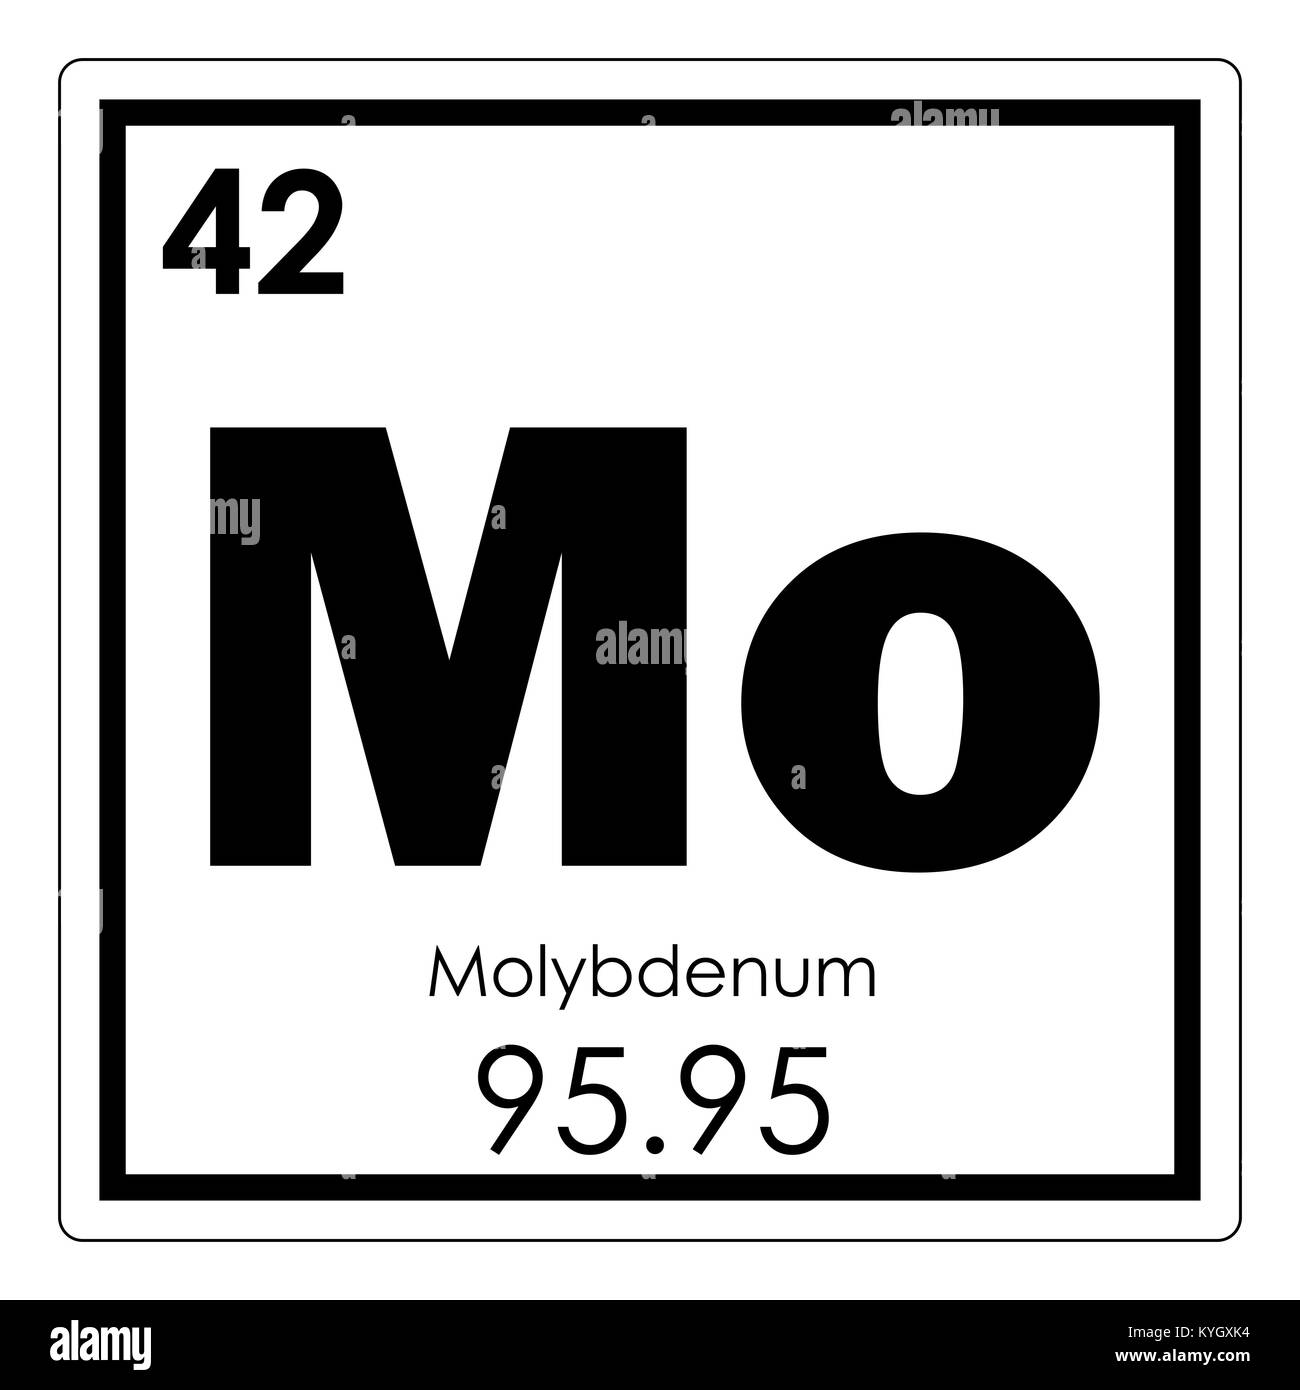 Molybdenum chemical element periodic table science symbol stock molybdenum chemical element periodic table science symbol urtaz Gallery